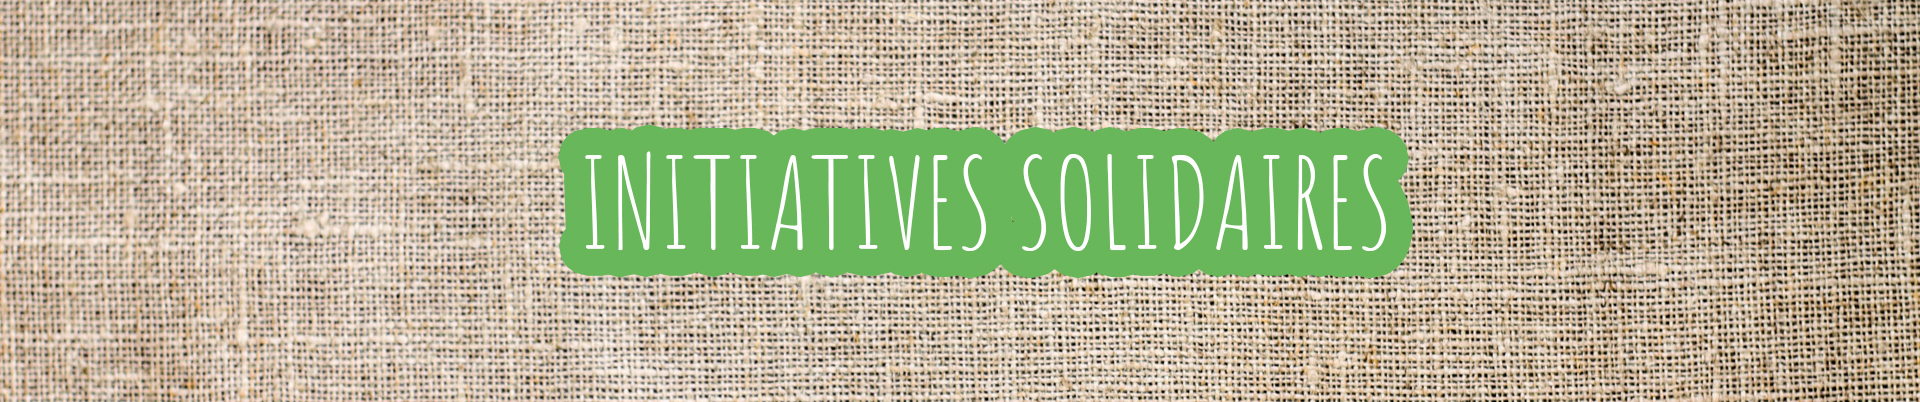 banner-initiatives